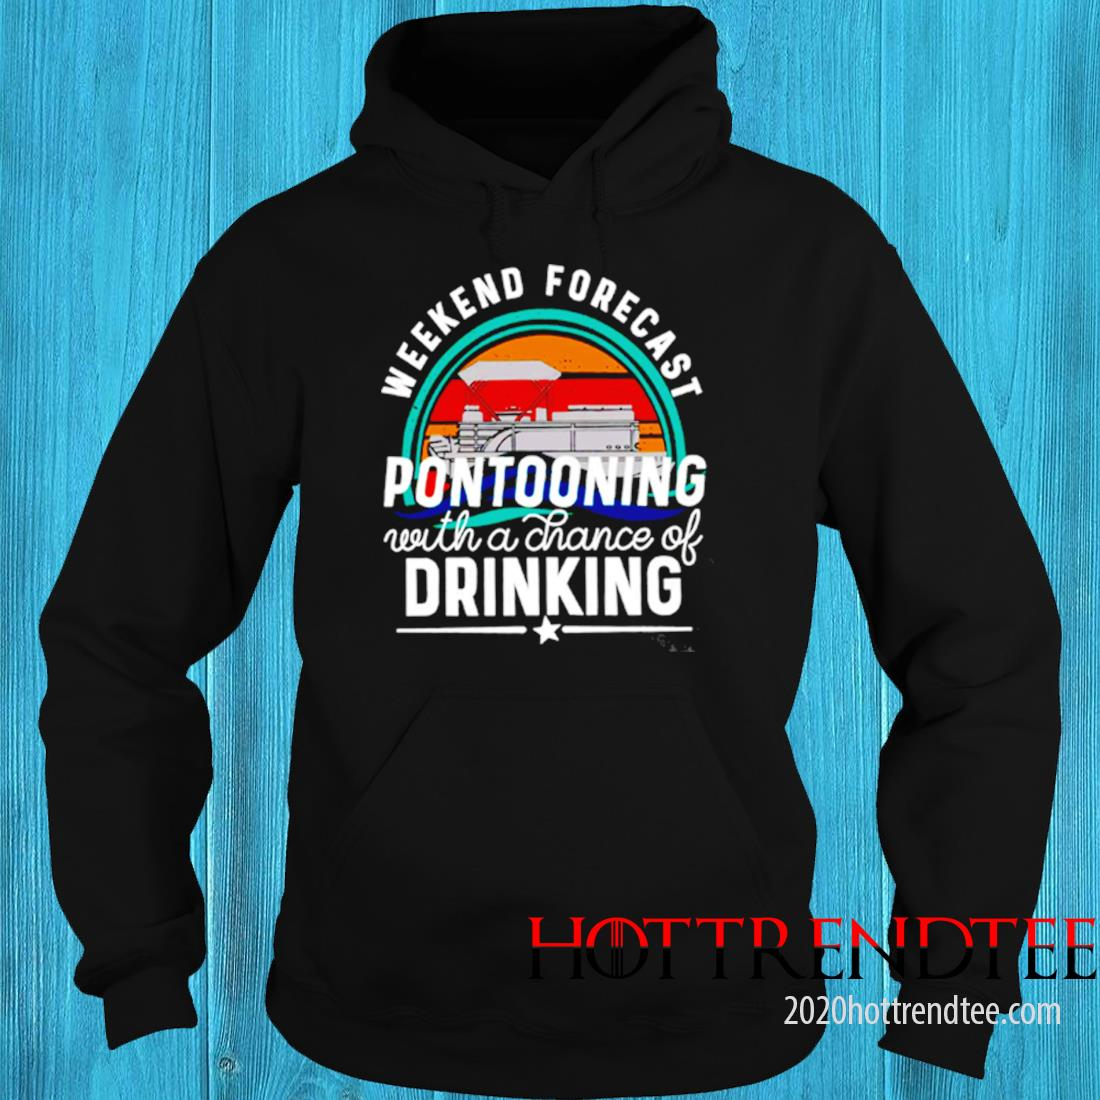 Weekend Forecast Pontooning With A Chance Of Drinking Sunset Shirt hoodie